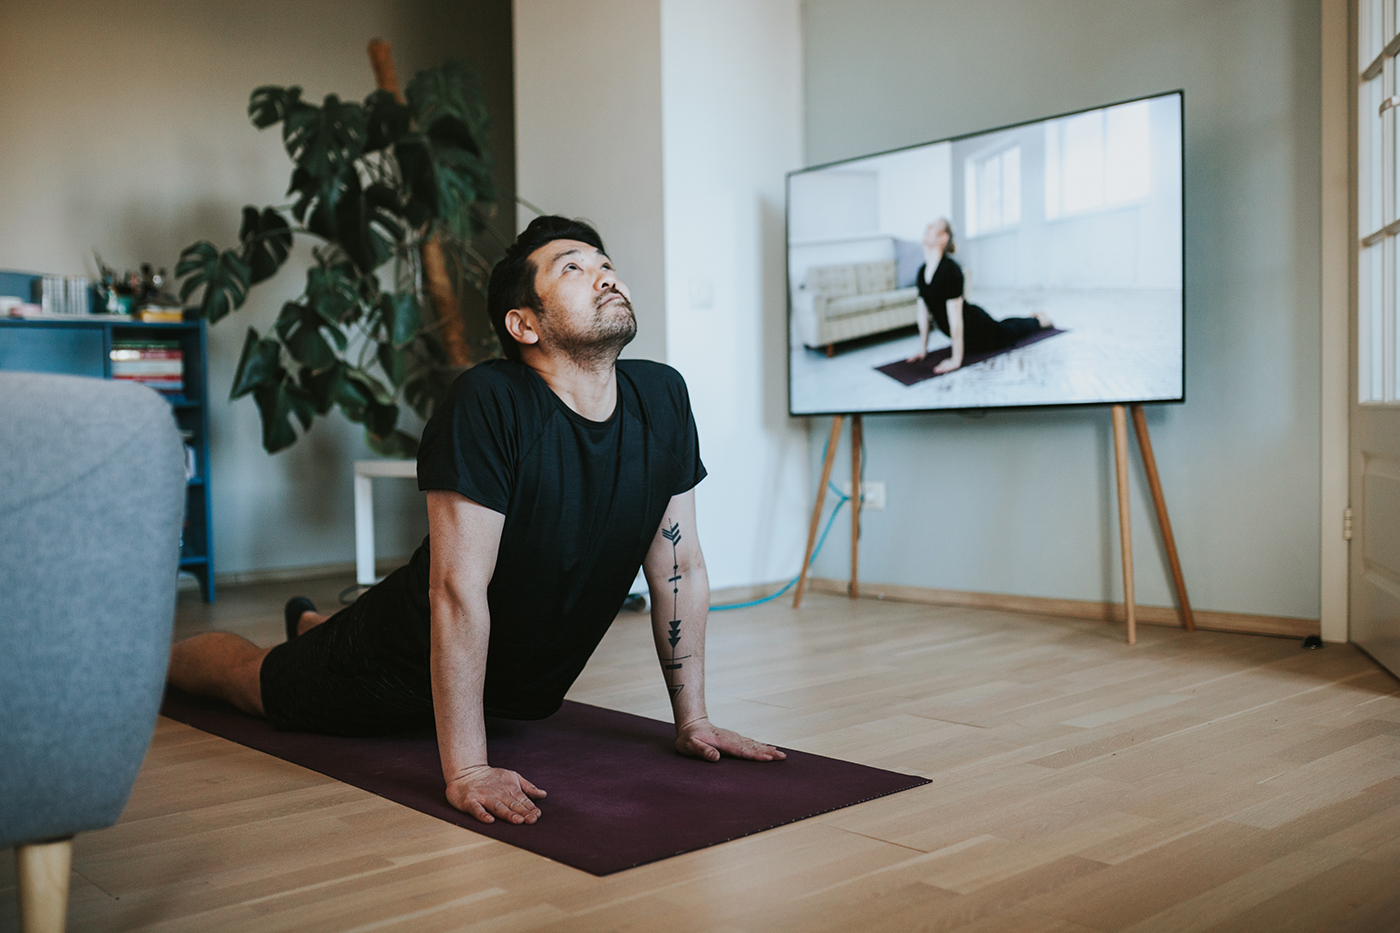 Man doing online yoga course in living room